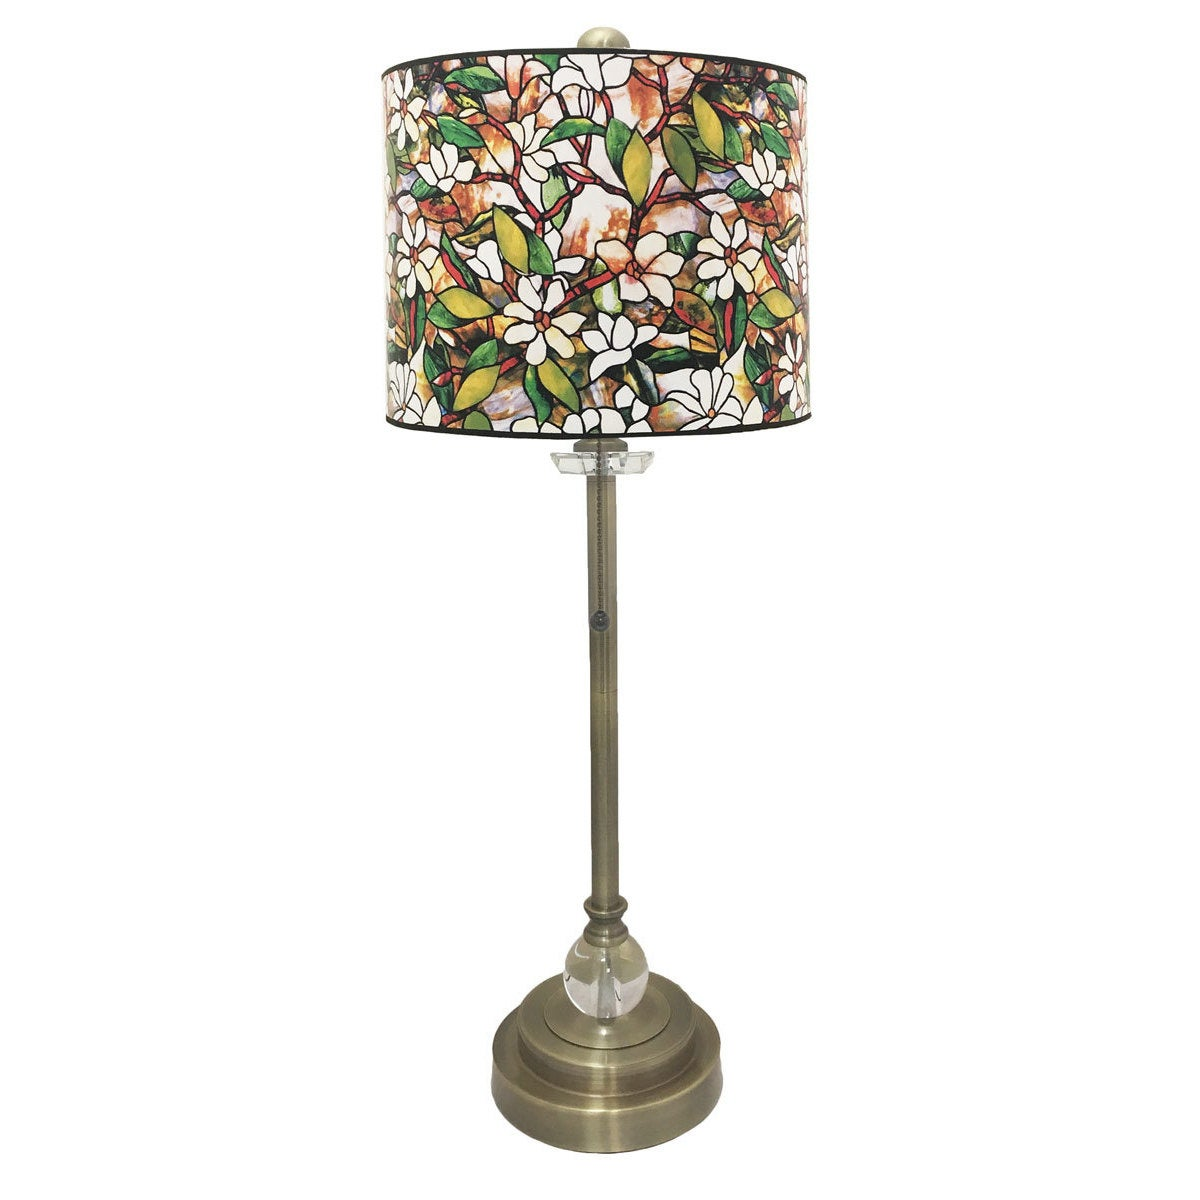 Picture of: Shop Black Friday Deals On Royal Designs Antique Brass Lamp With Magnolia Stained Glass Design Lamp Shade Overstock 19503229 1 Light Crystal